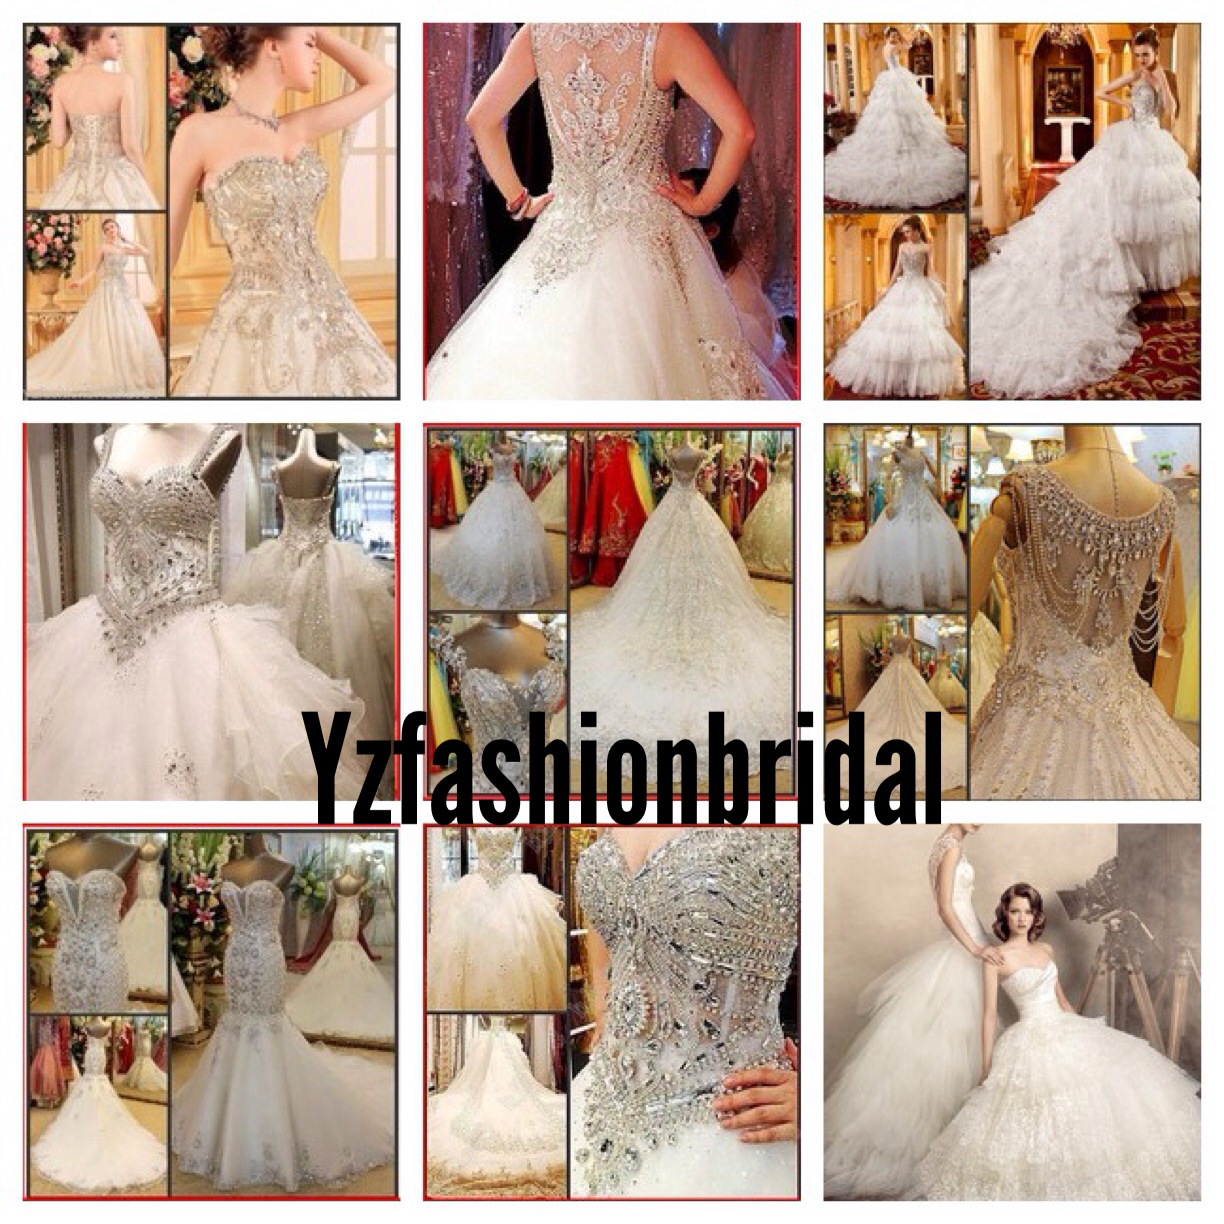 Wedding Gifts For USD300 : 300 gifts! Dont miss it! Shop now! www.yzfashionbridal.com #wedding ...